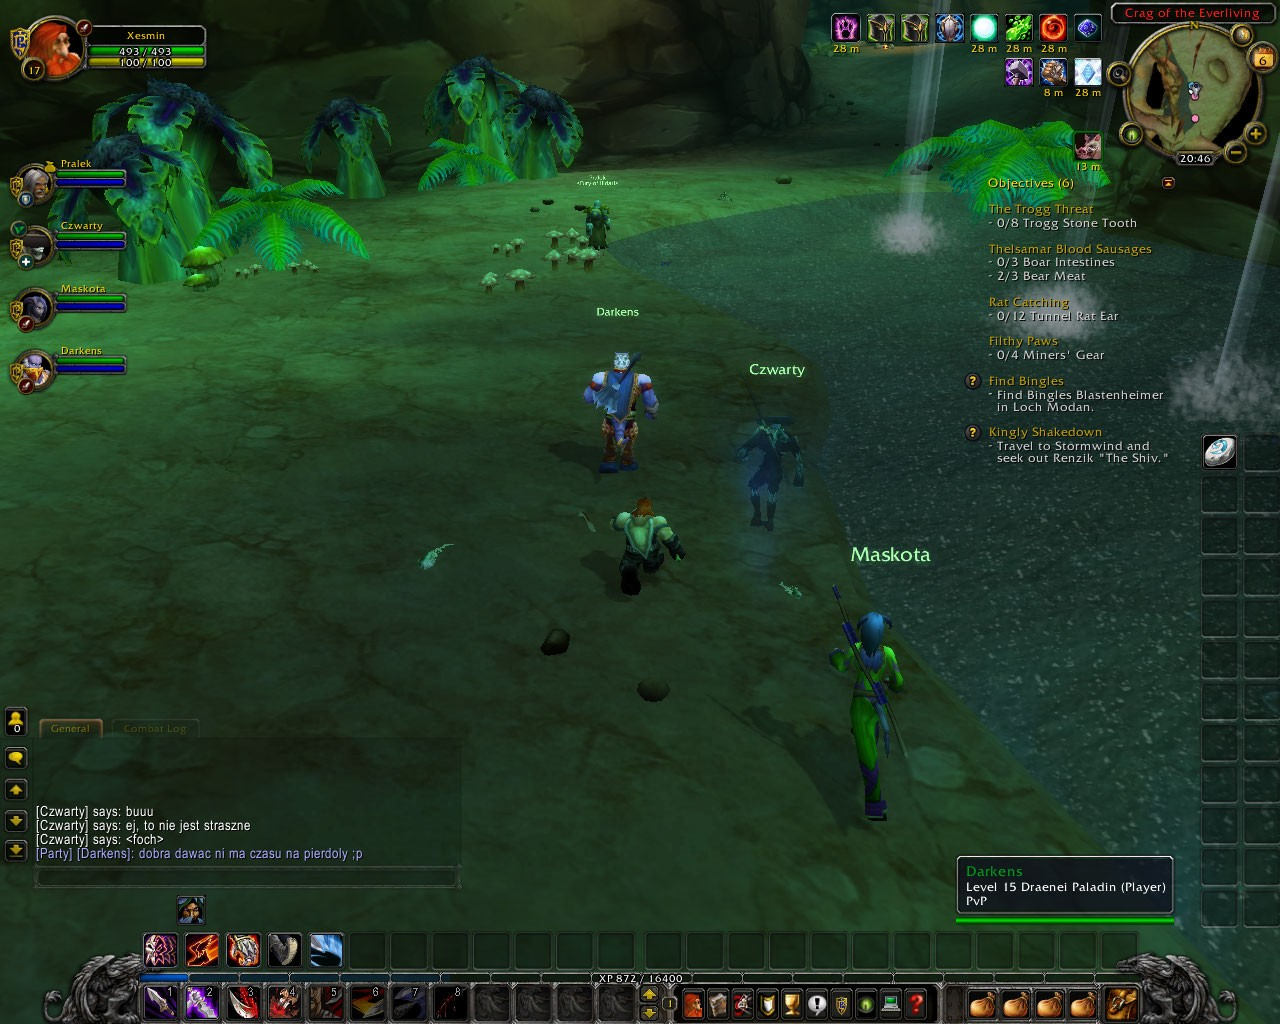 World of Warcraft - Wailing Caverns - Dungeon